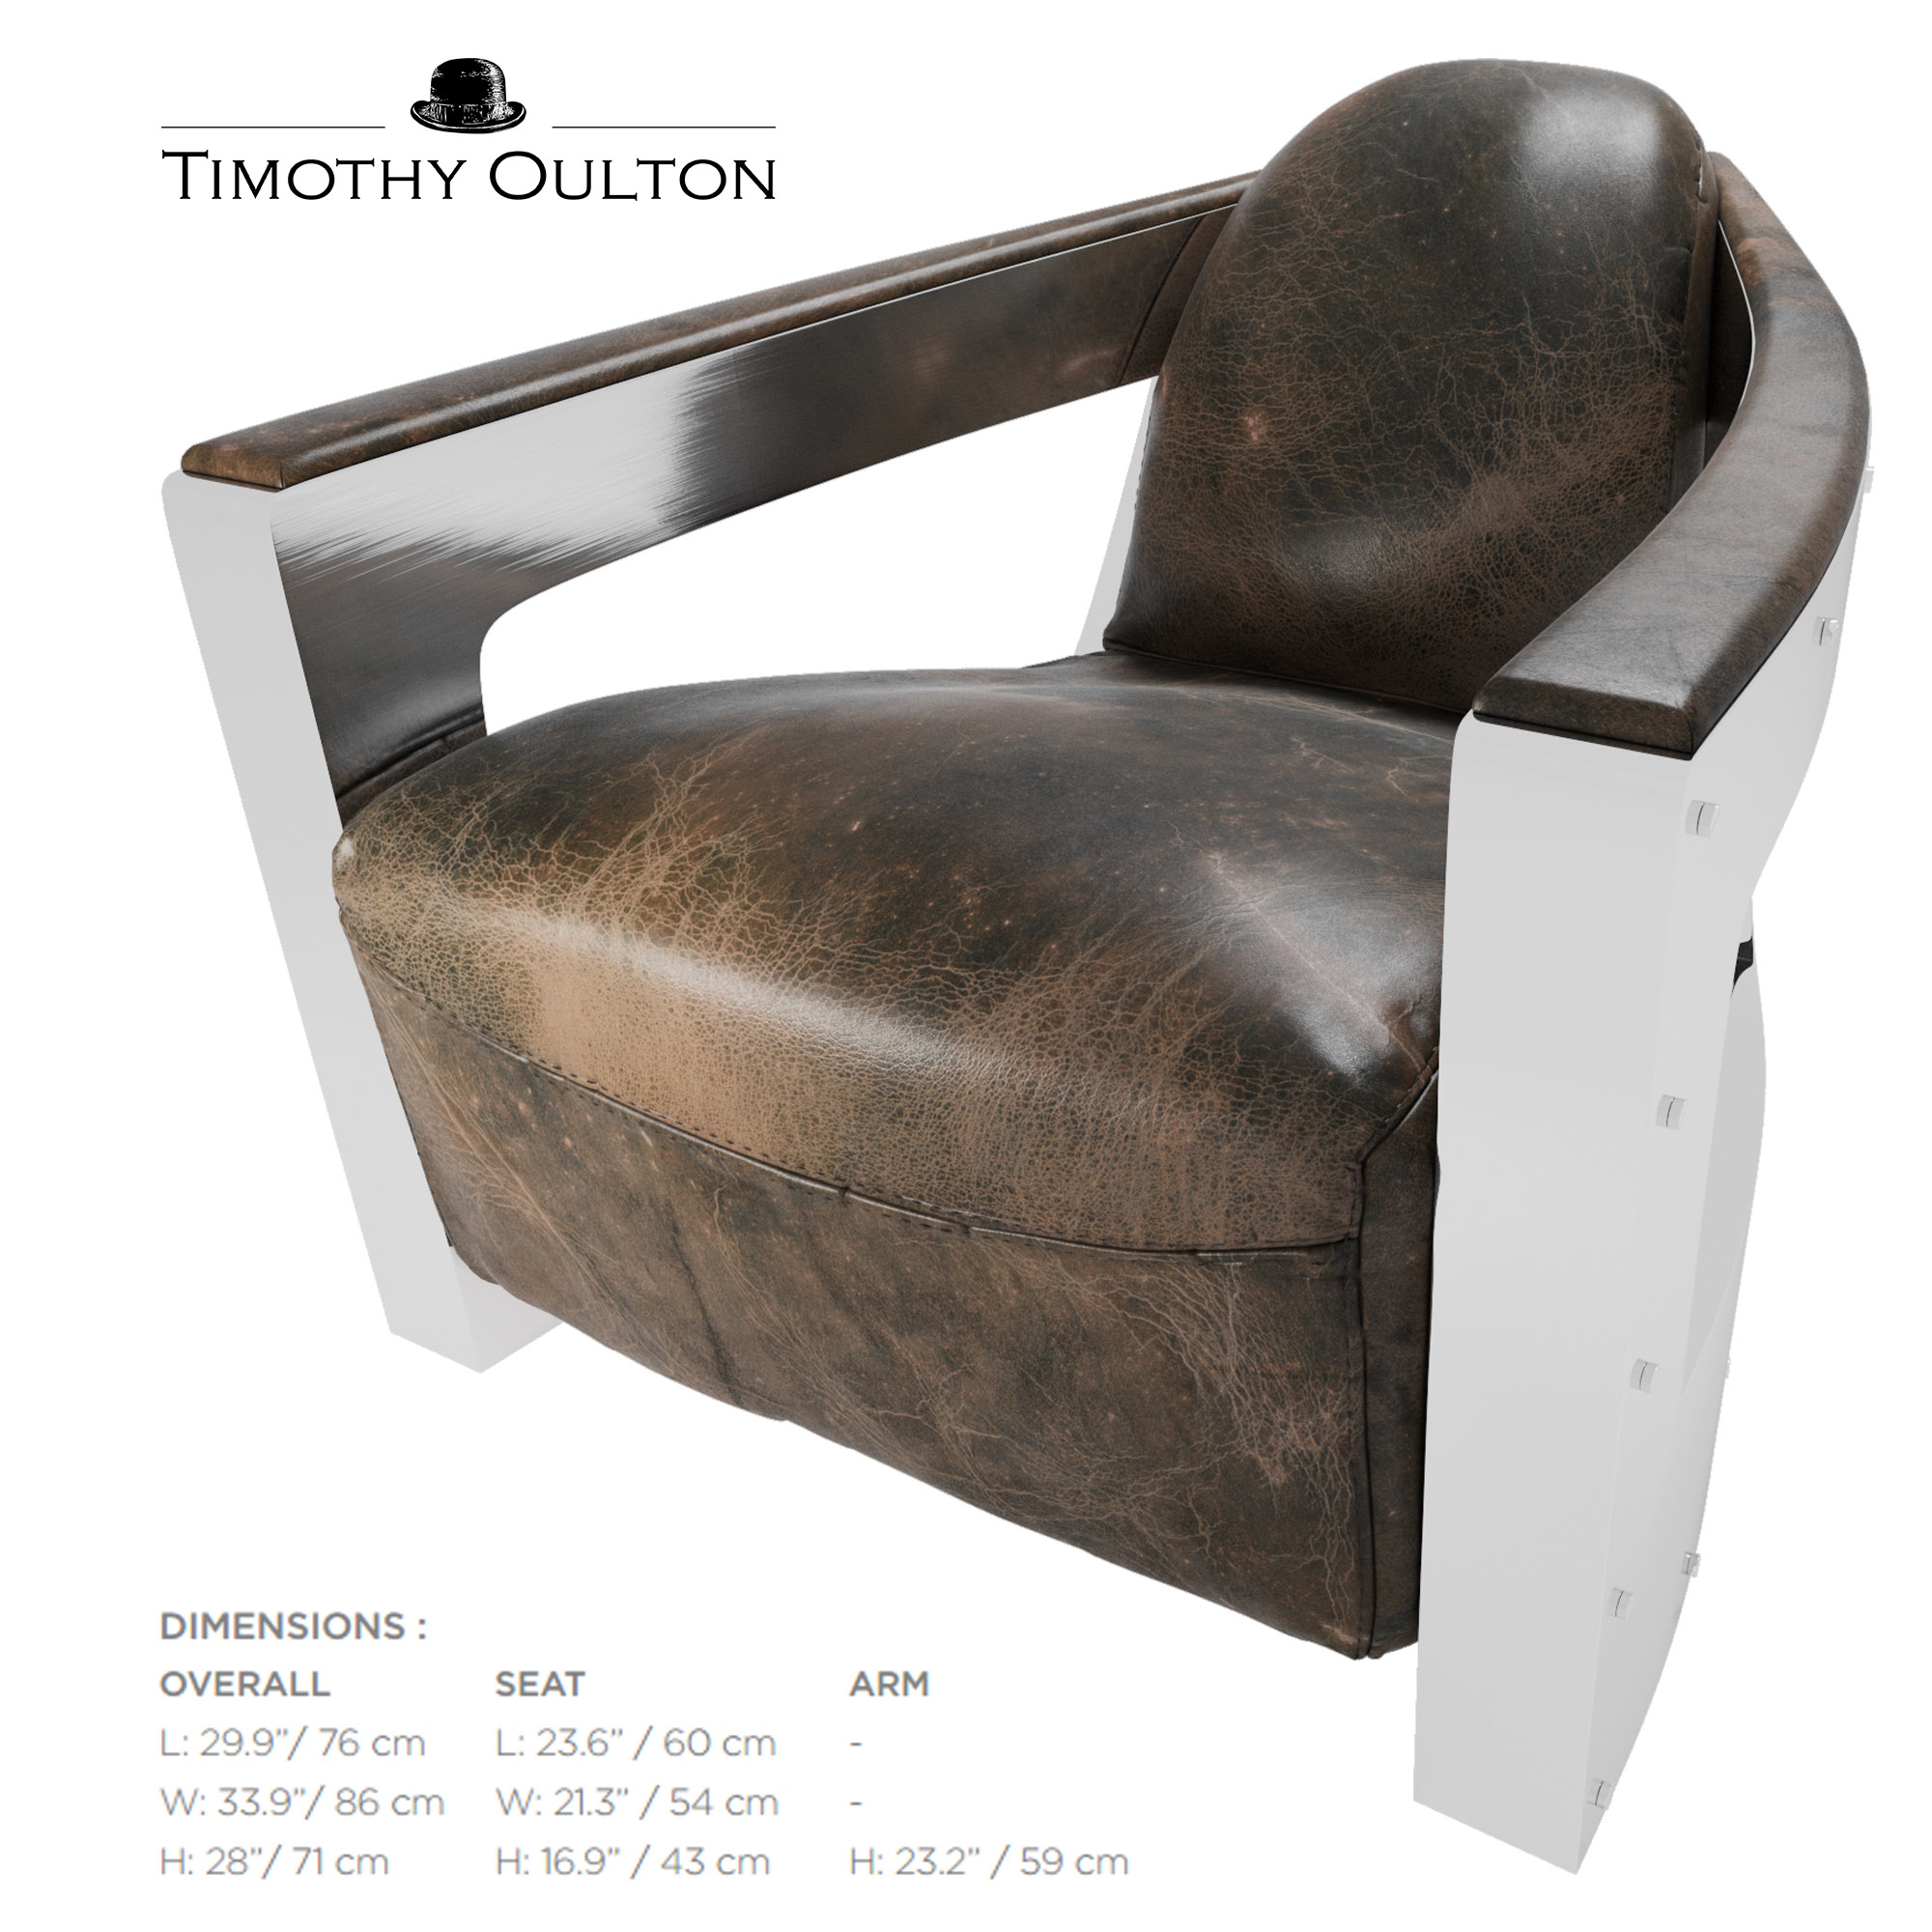 Swell Timothy Oulton Mars Stuhl Mk3 Onthecornerstone Fun Painted Chair Ideas Images Onthecornerstoneorg